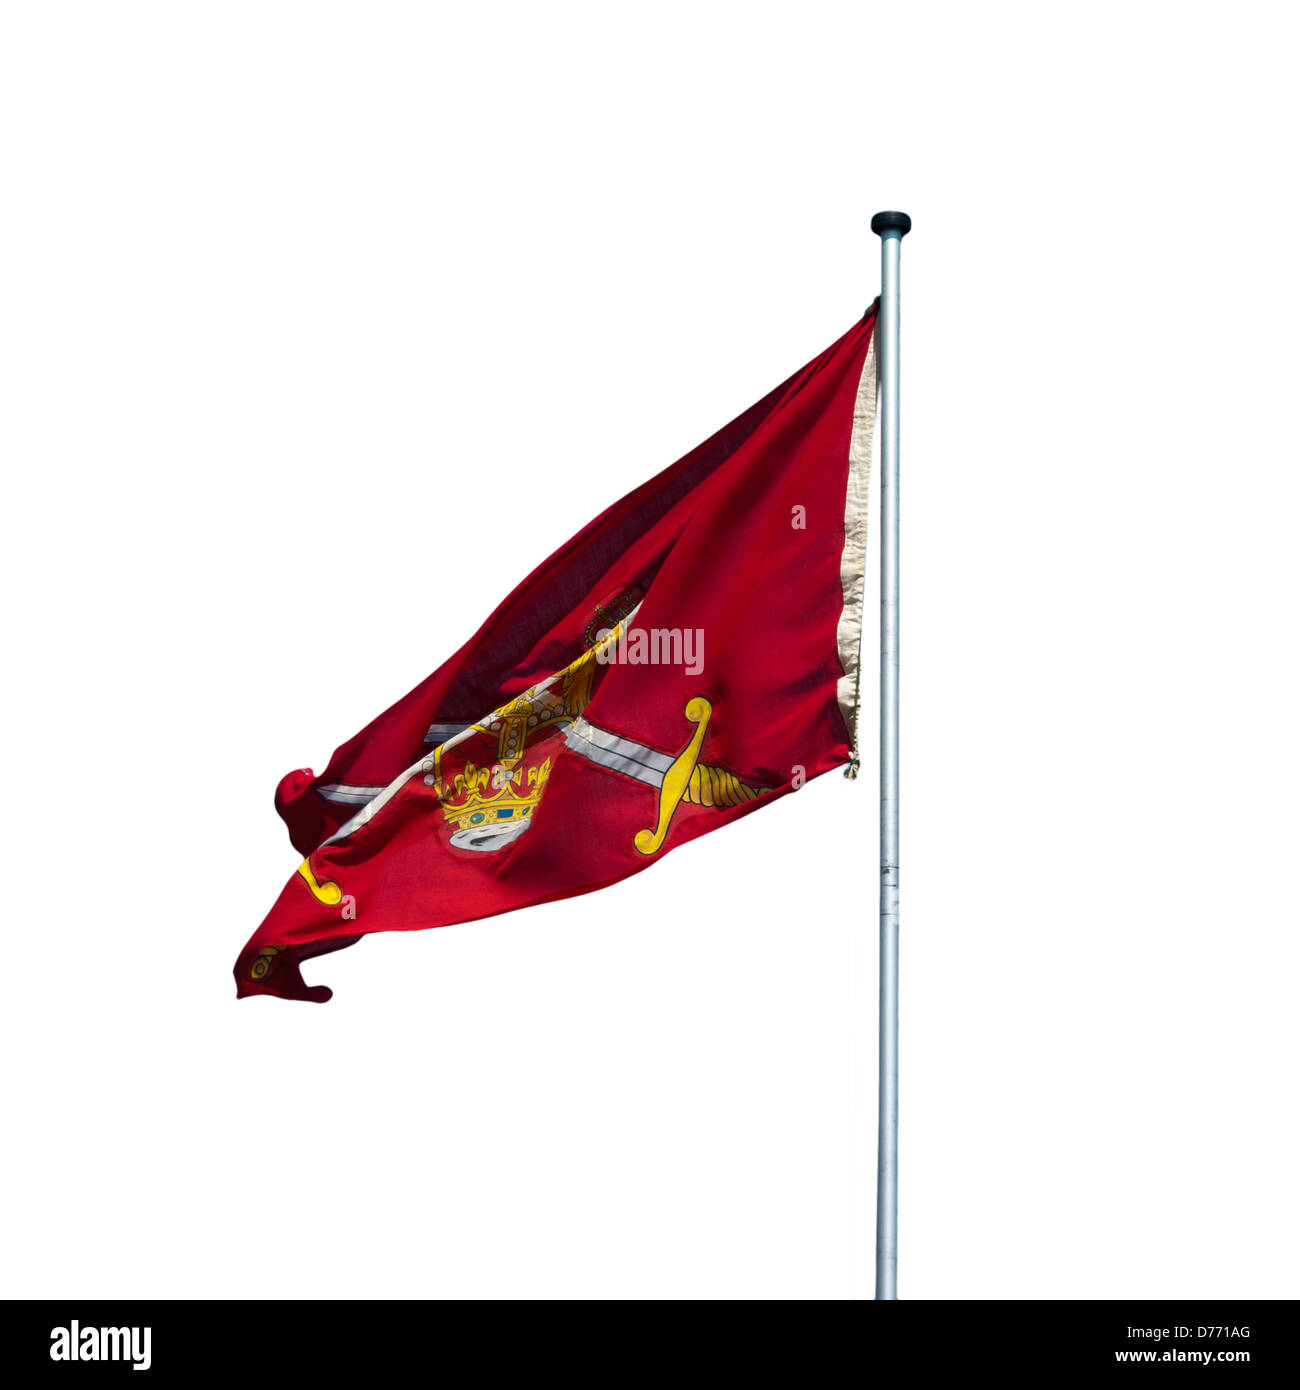 Flag Of The British Army Non Ceremonial - Stock Image